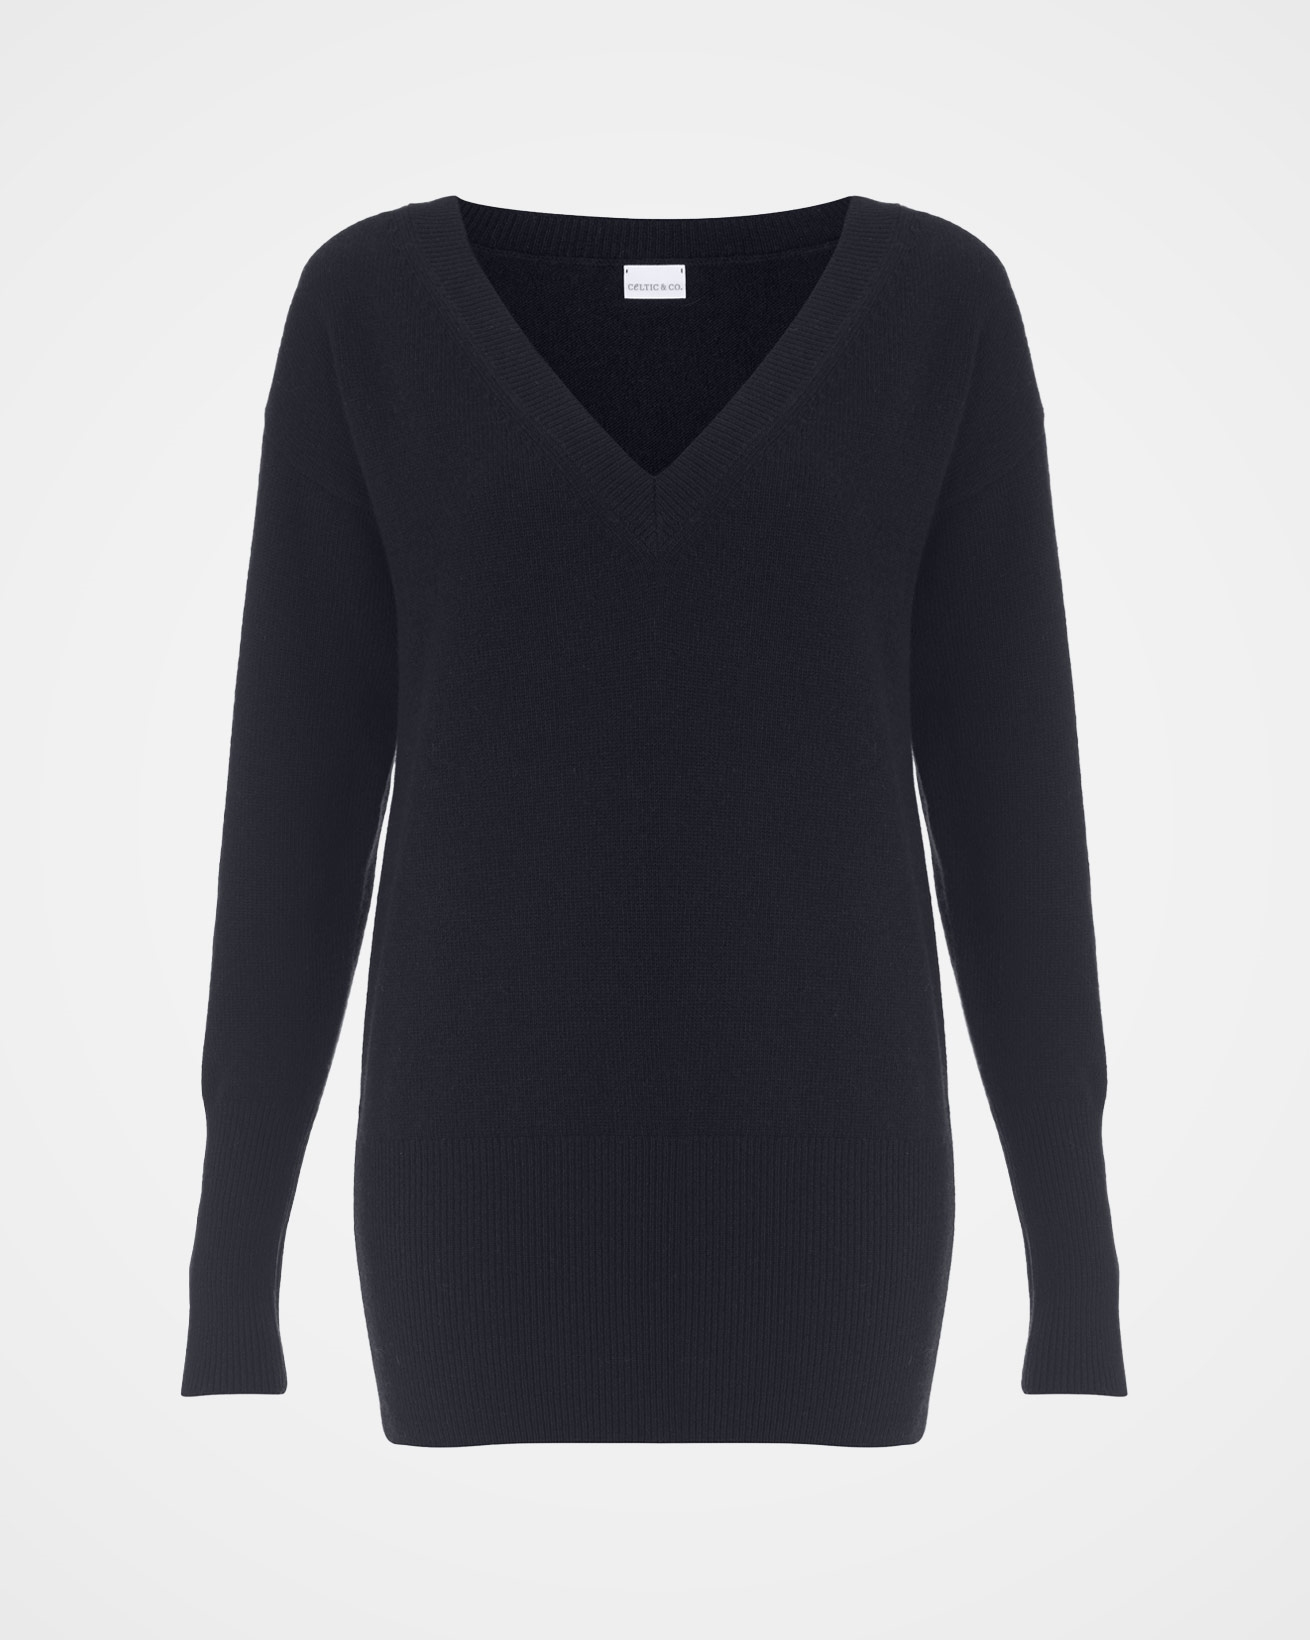 7659_supersoft-v-jumper_dark-navy_front.jpg